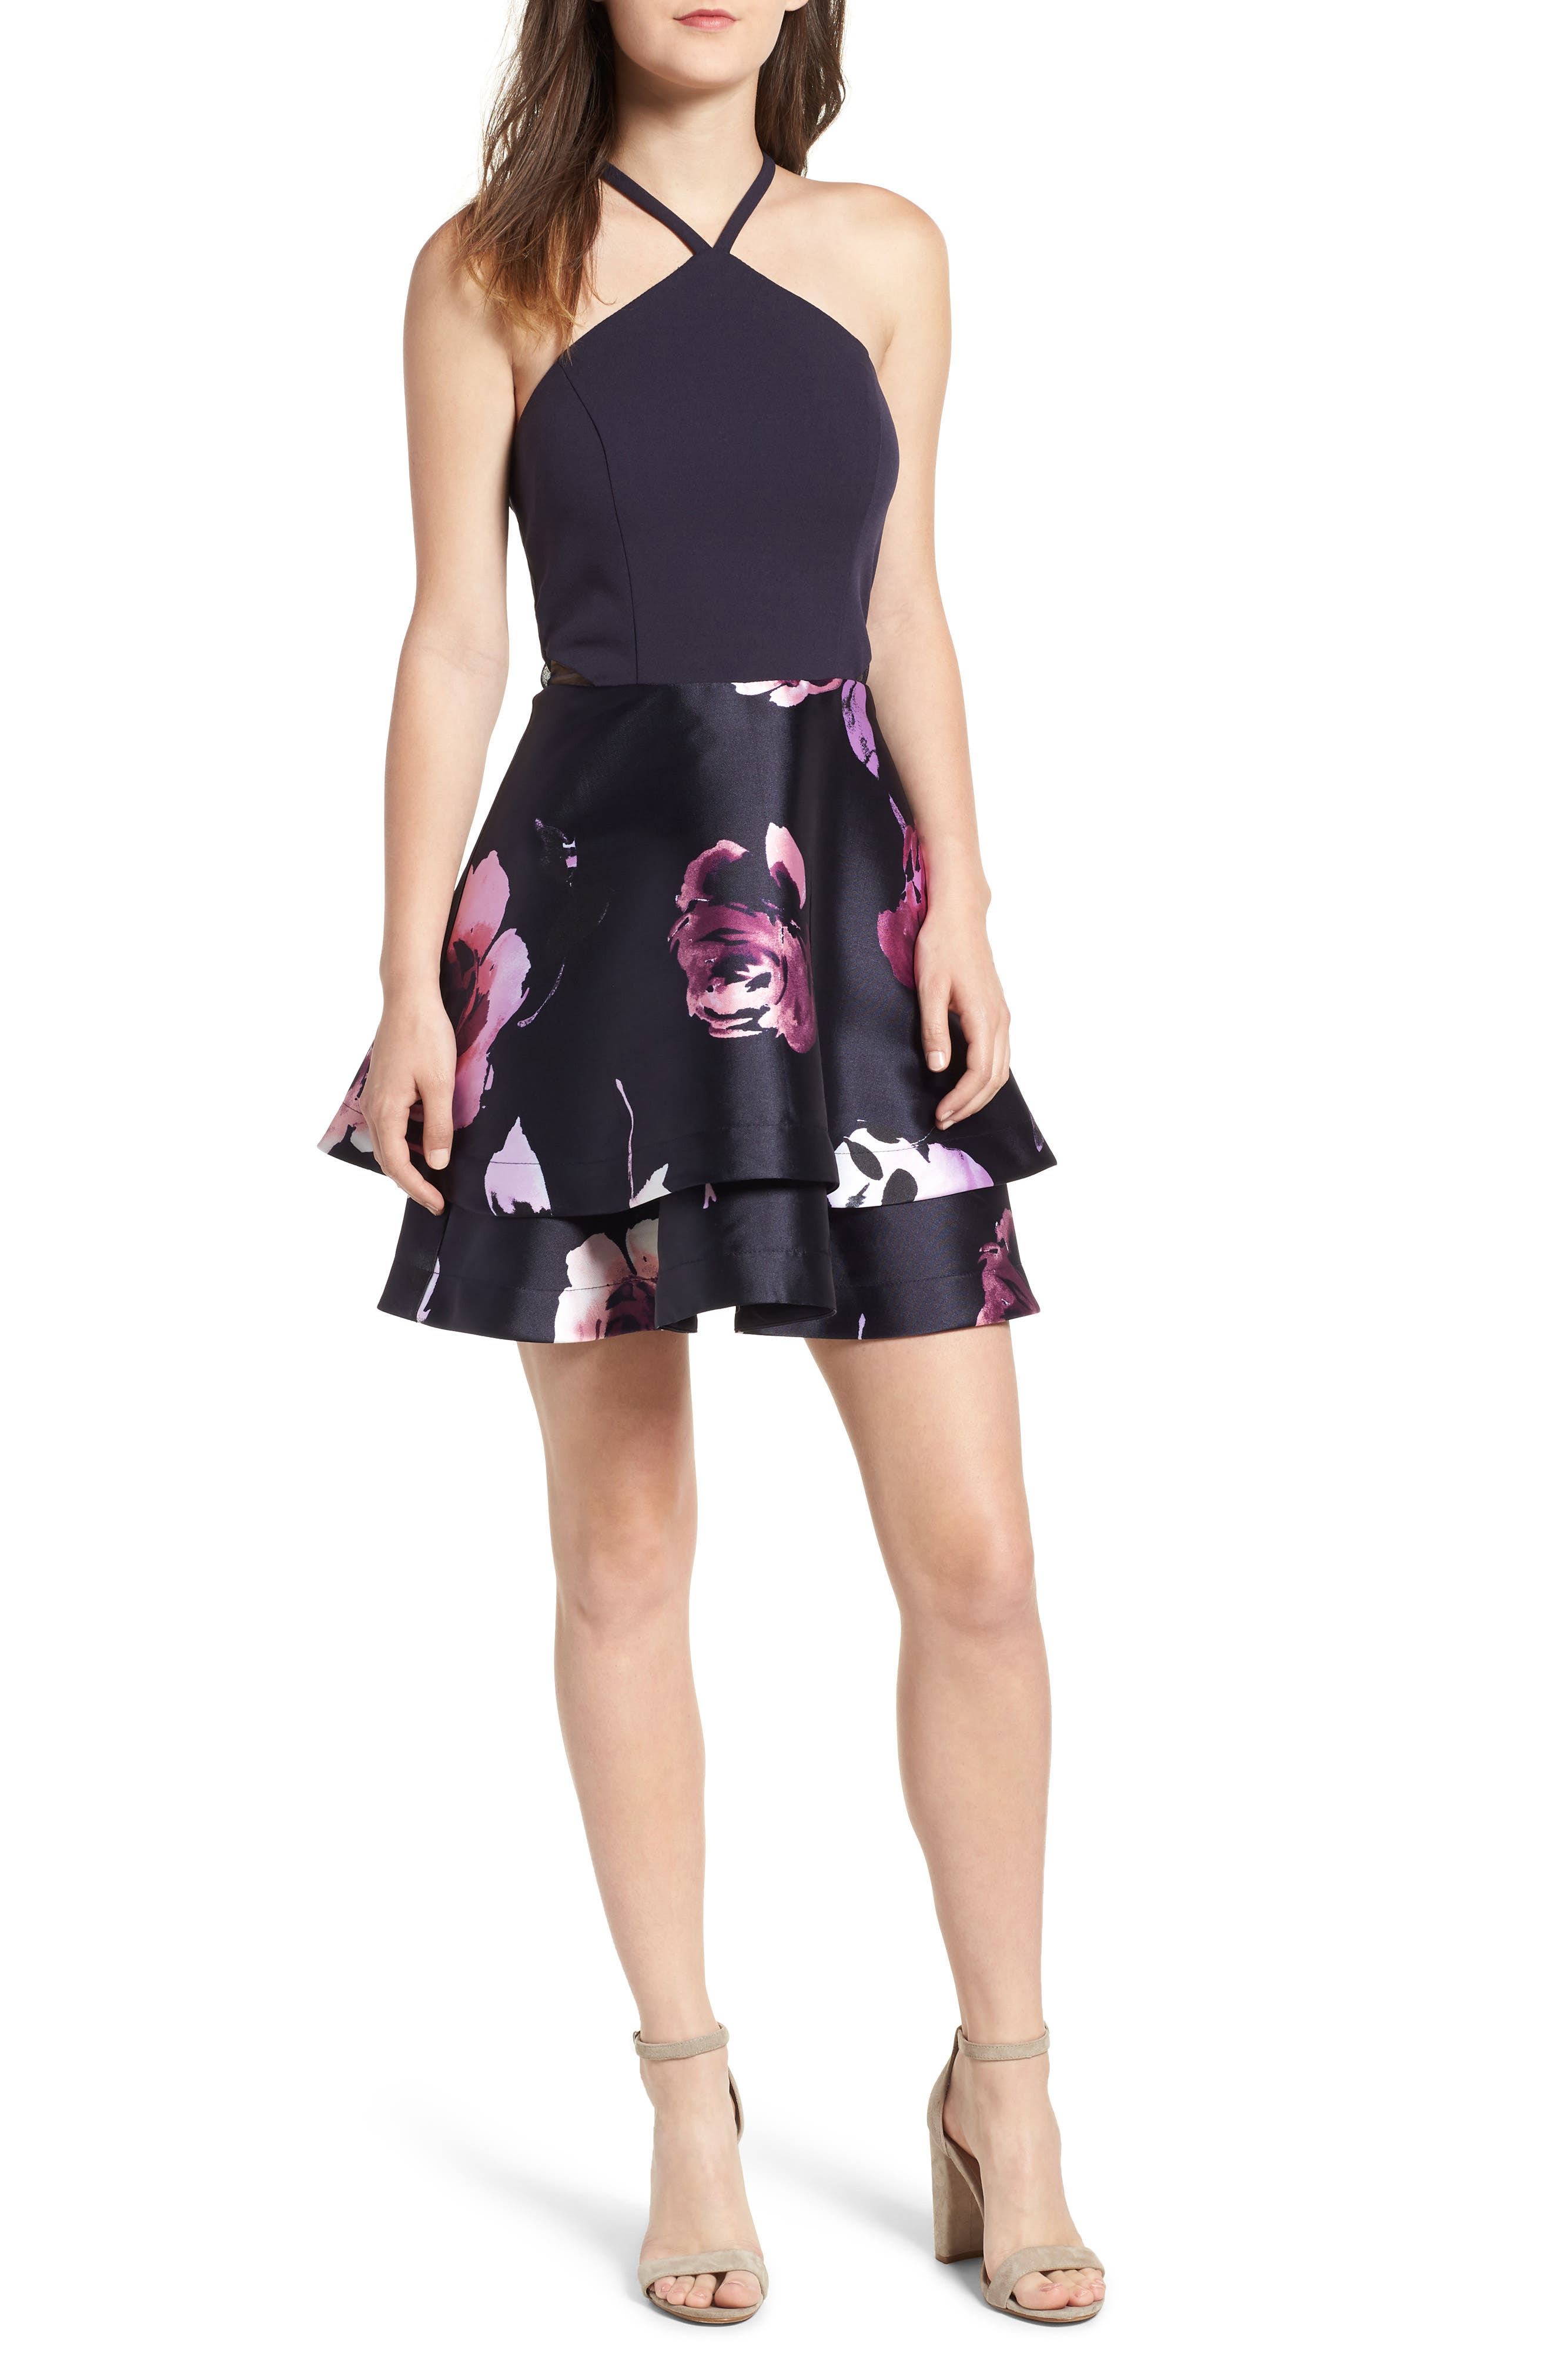 SPEECHLESS, Floral Fit & Flare Dress, Main thumbnail 1, color, NAVY/ BLUSH